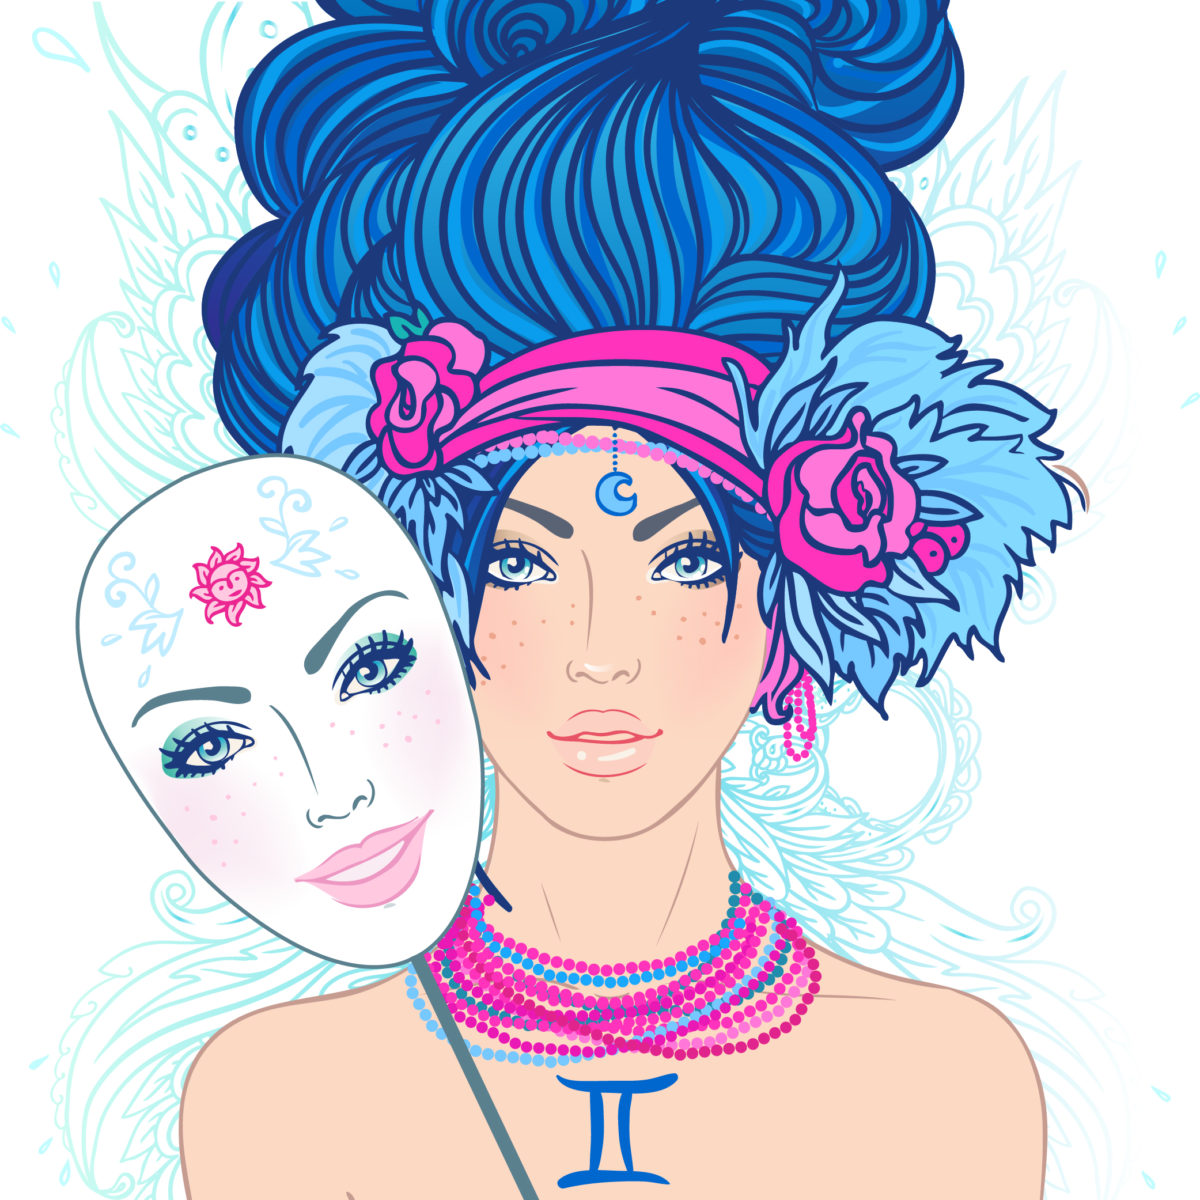 Illustration of gemini zodiac sign as a beautiful girl.